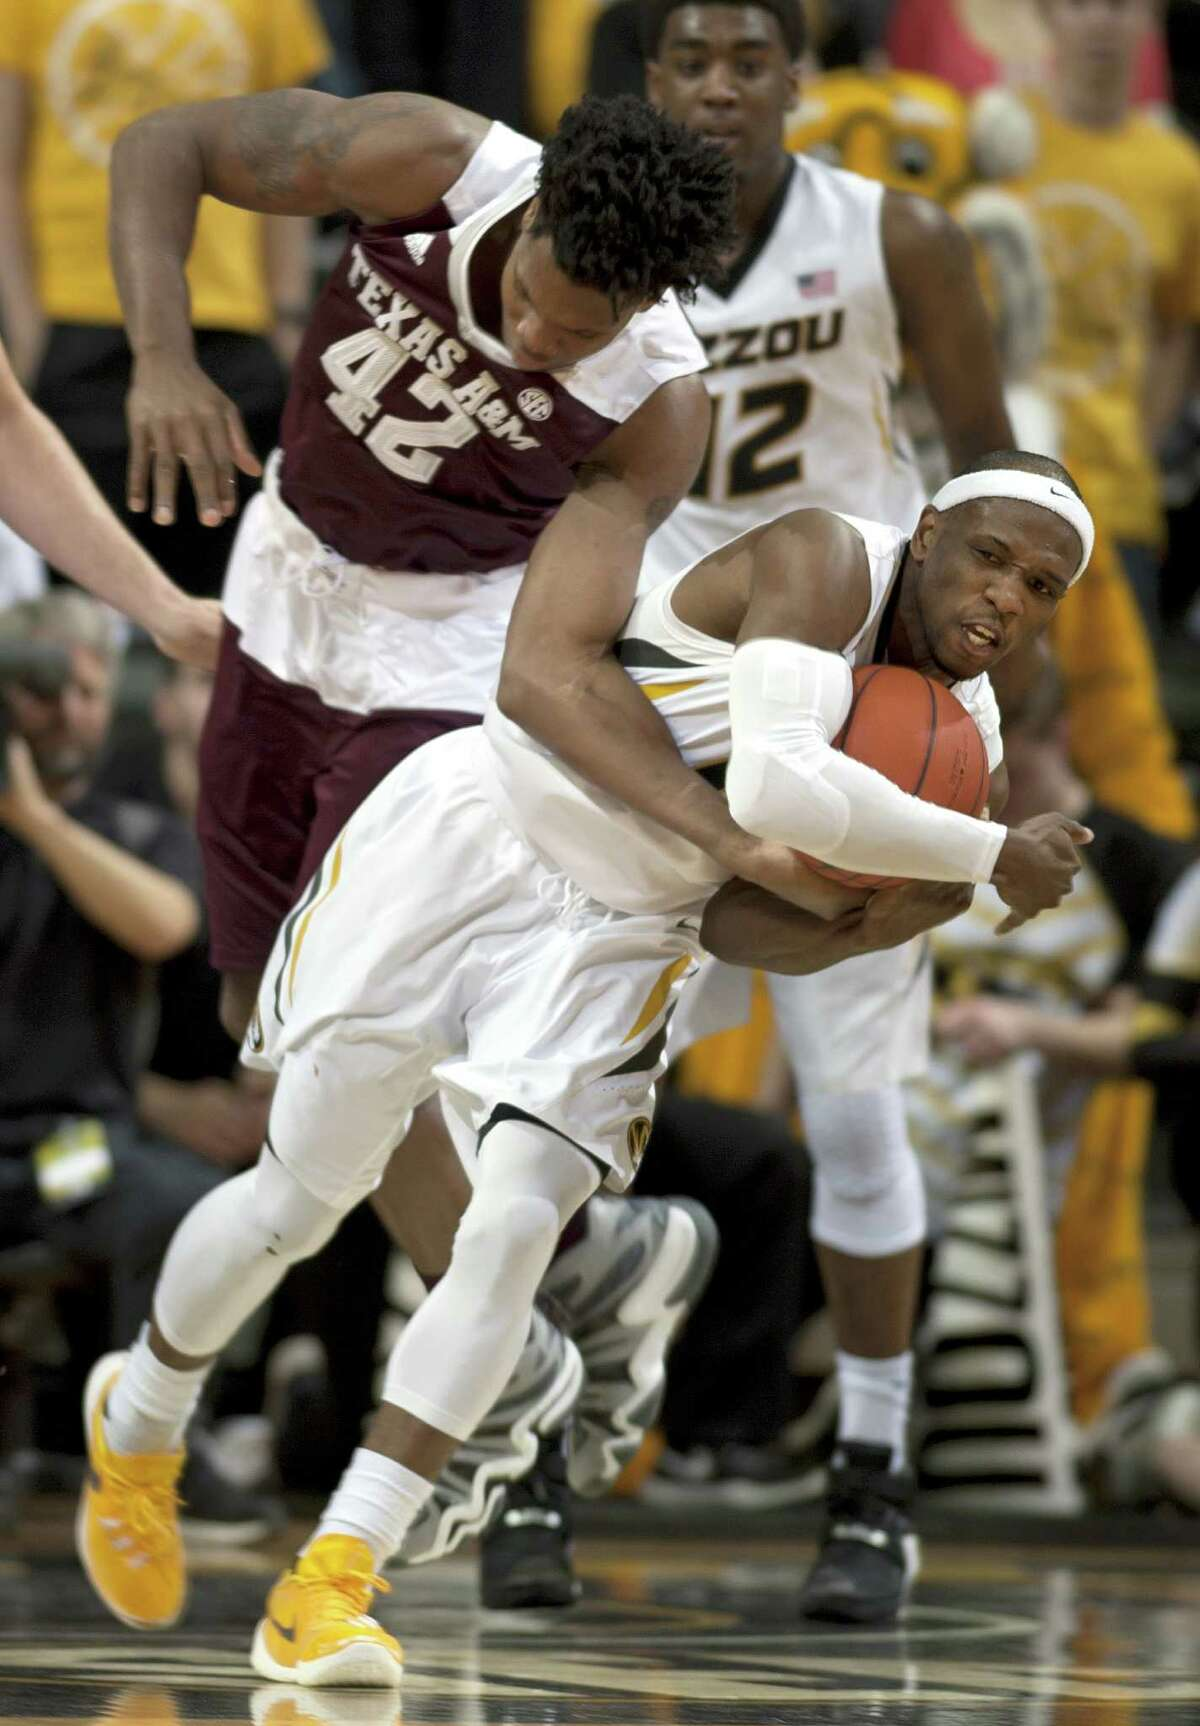 Missouri's Terrence Phillips, front, steals the ball from Texas A&M's Tavario Miller (42) during the first half of an NCAA college basketball game Saturday, Feb. 27, 2016, in Columbia, Mo. (Nick Schnelle/Columbia Daily Tribune via AP)